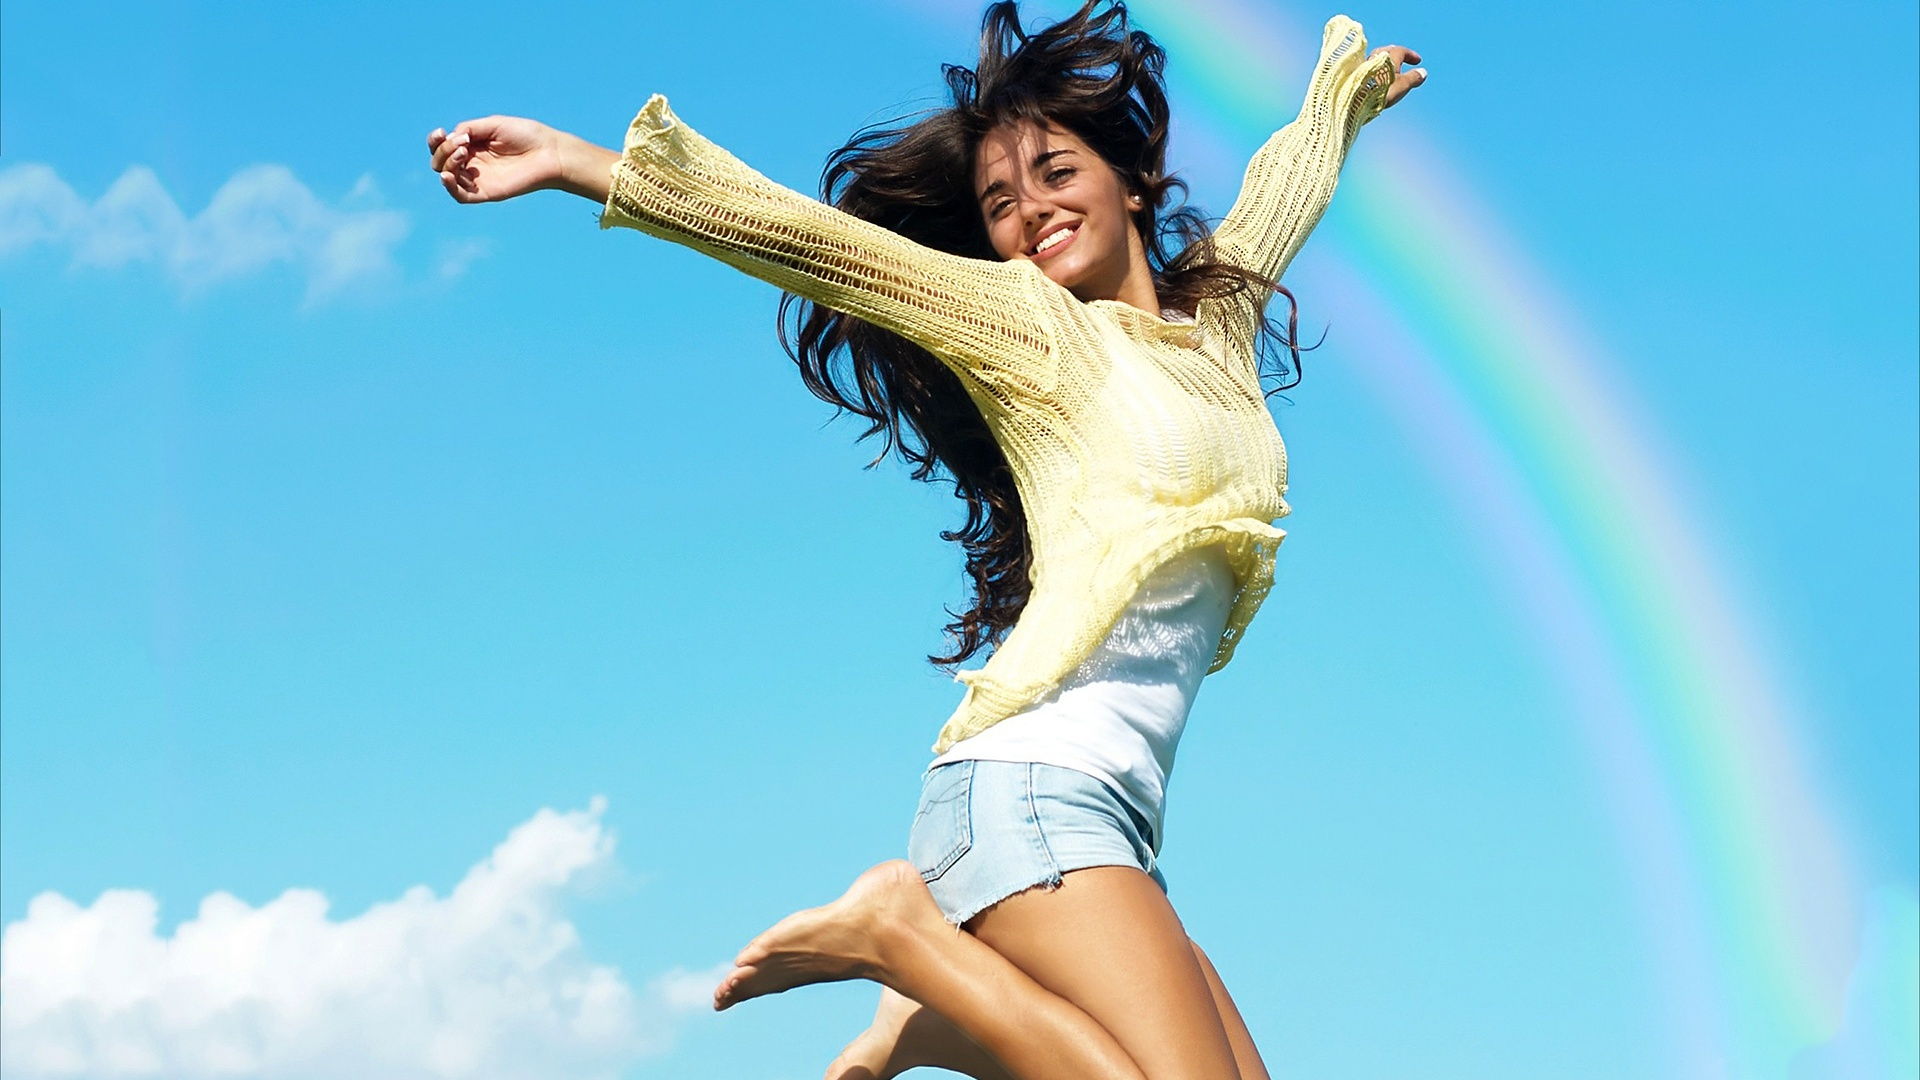 Wallpaper Summer Girl Beautiful Jumping 1920x1200 Hd Picture